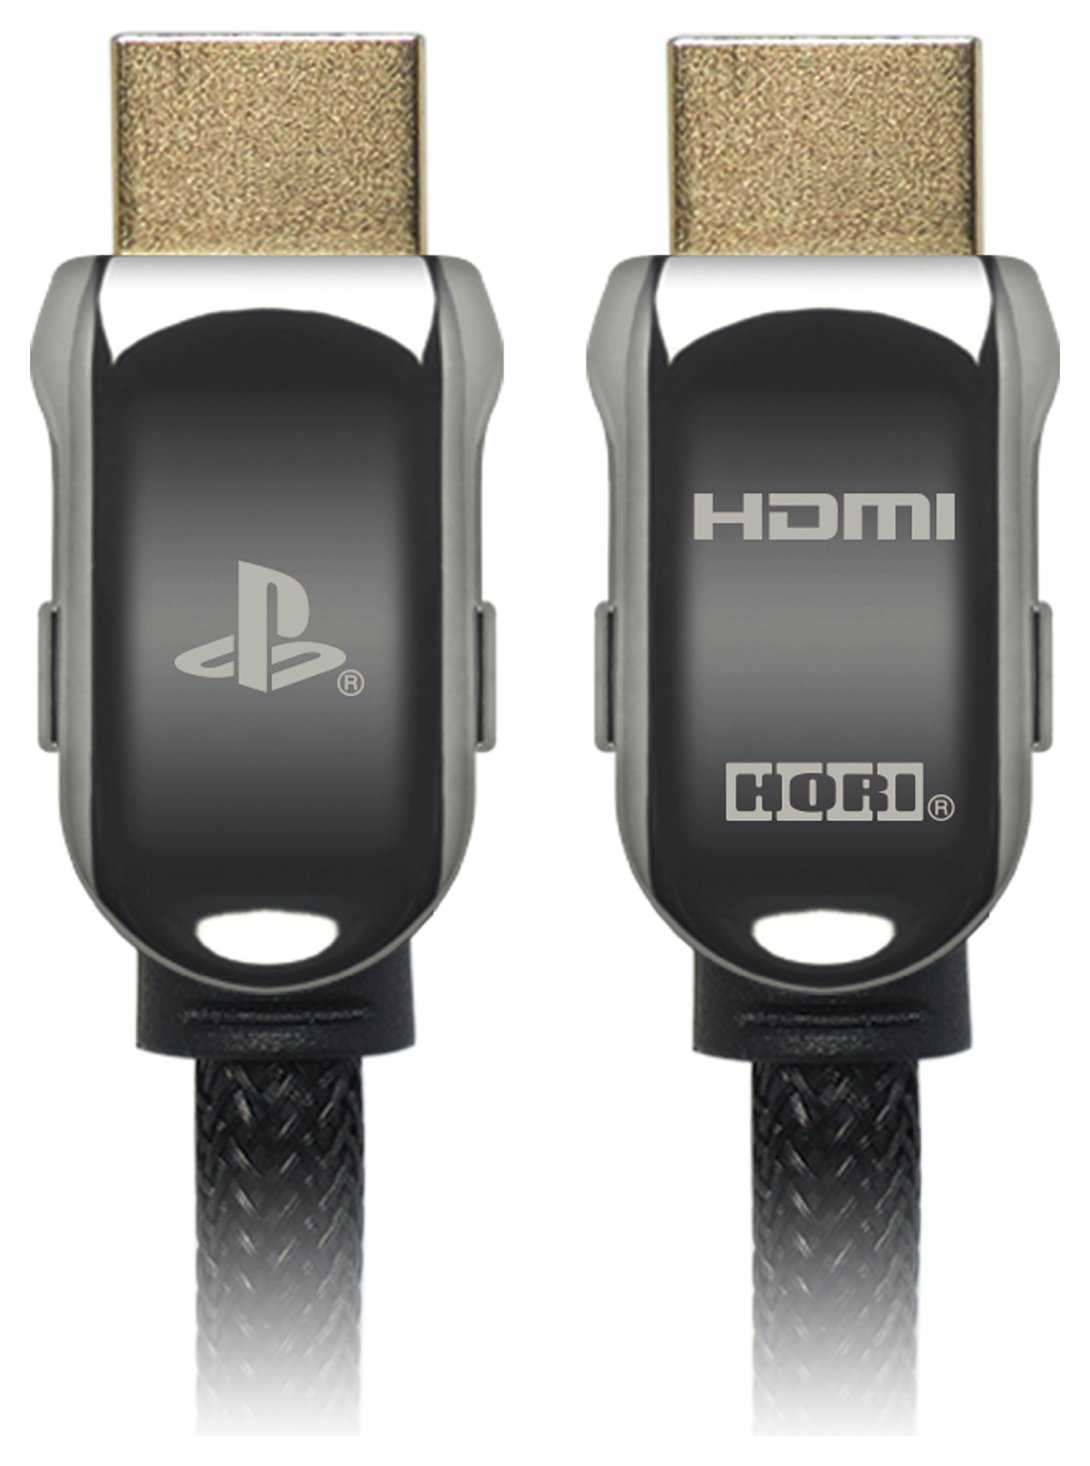 official-sony-hdmi-cable-for-ps4